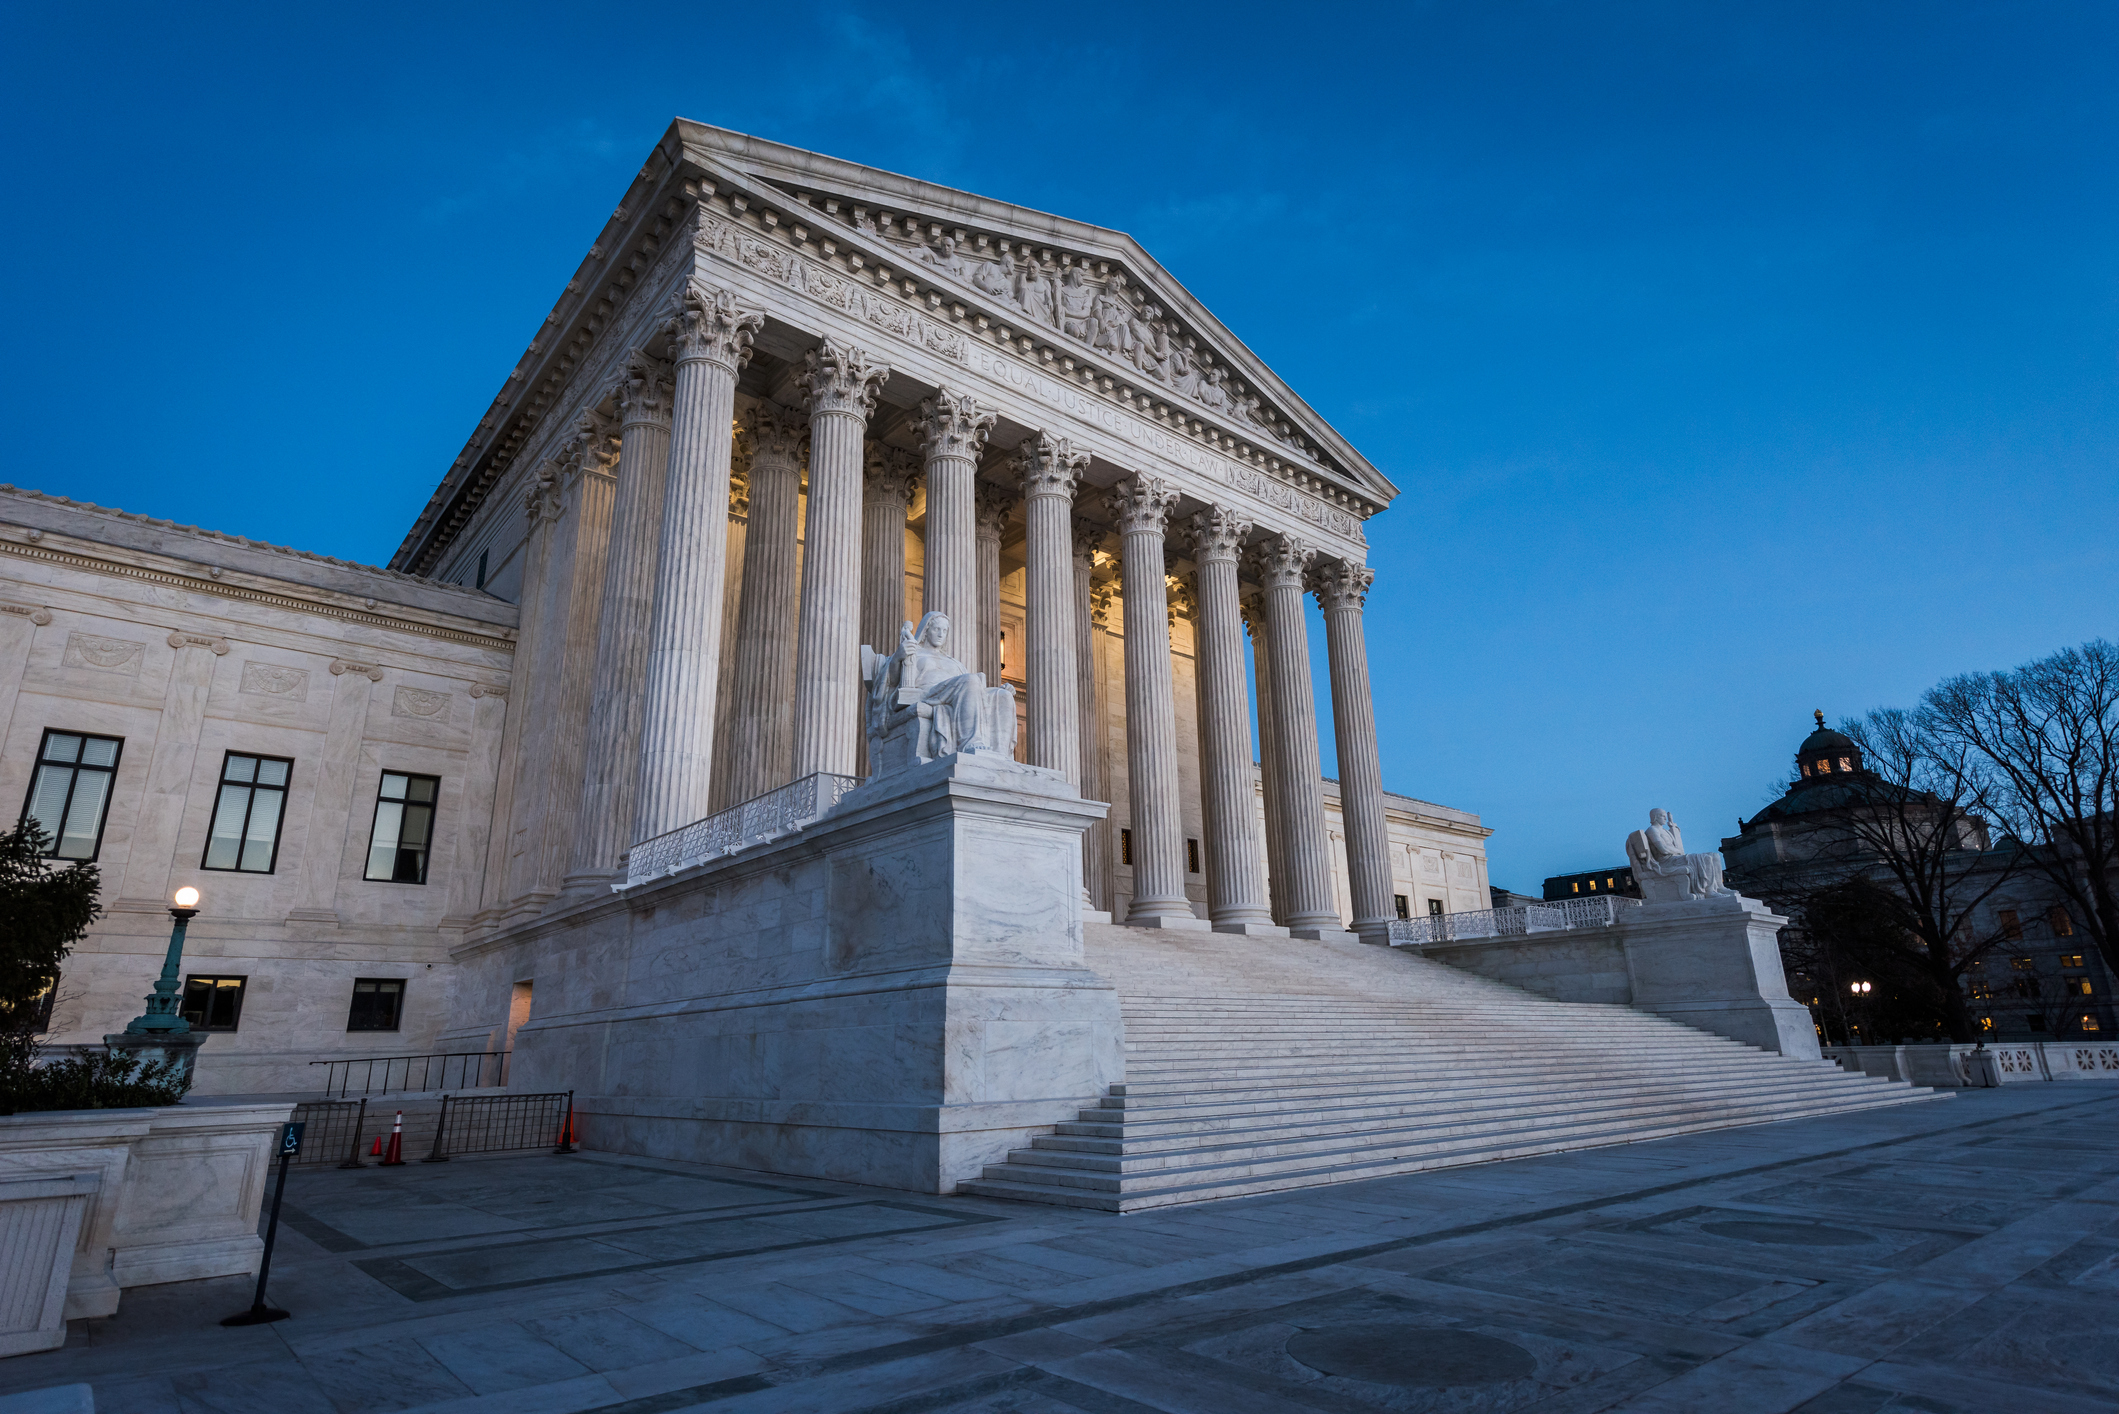 This photo shows the United States Supreme Court Building.